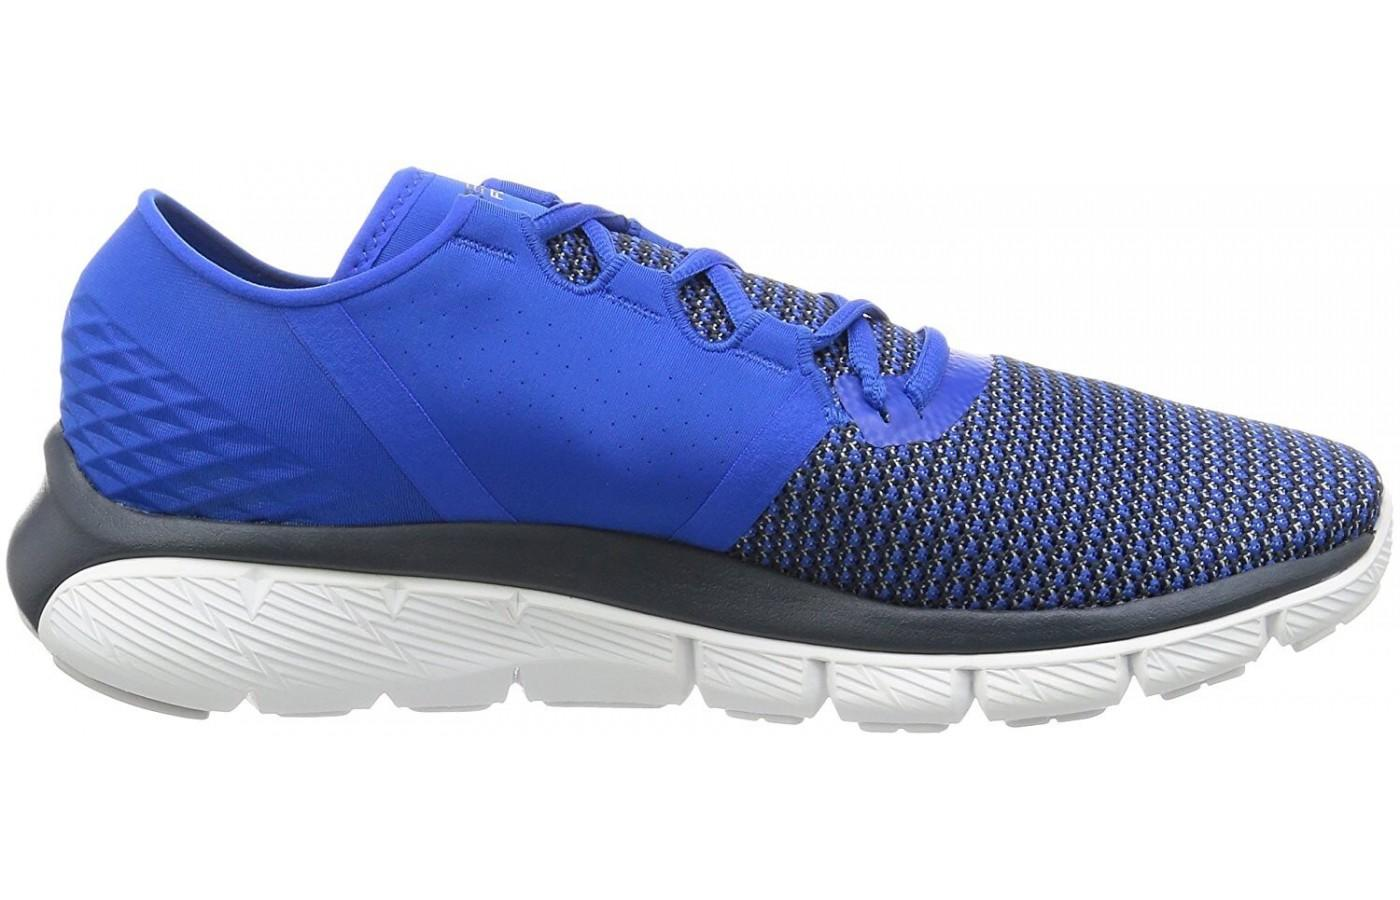 Dual layered midsole foam gives this shoe excellent responsiveness.